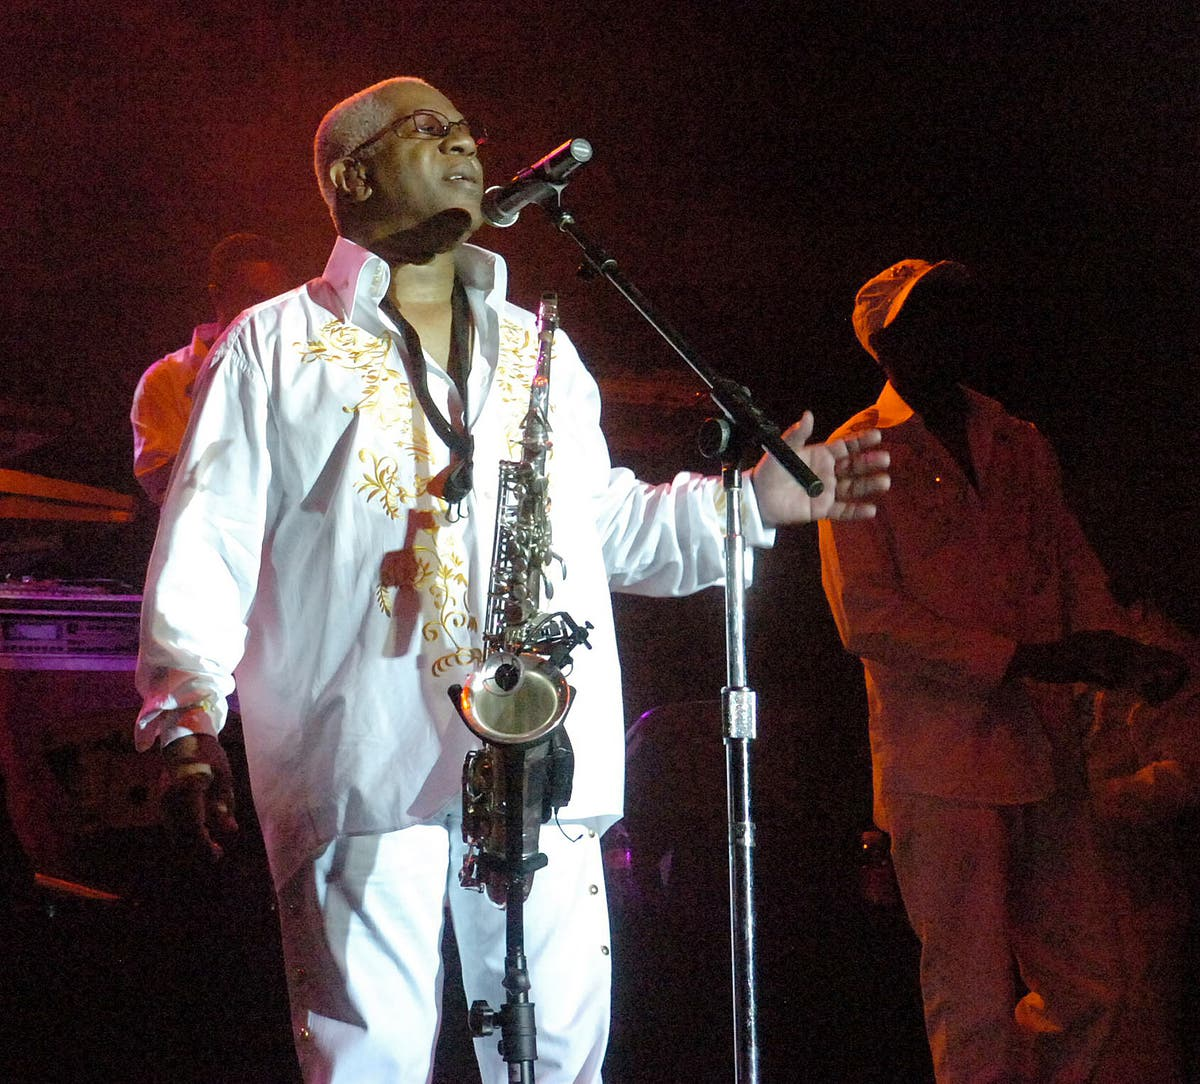 Kool & the Gang co-founder Dennis Thomas dead at age 70